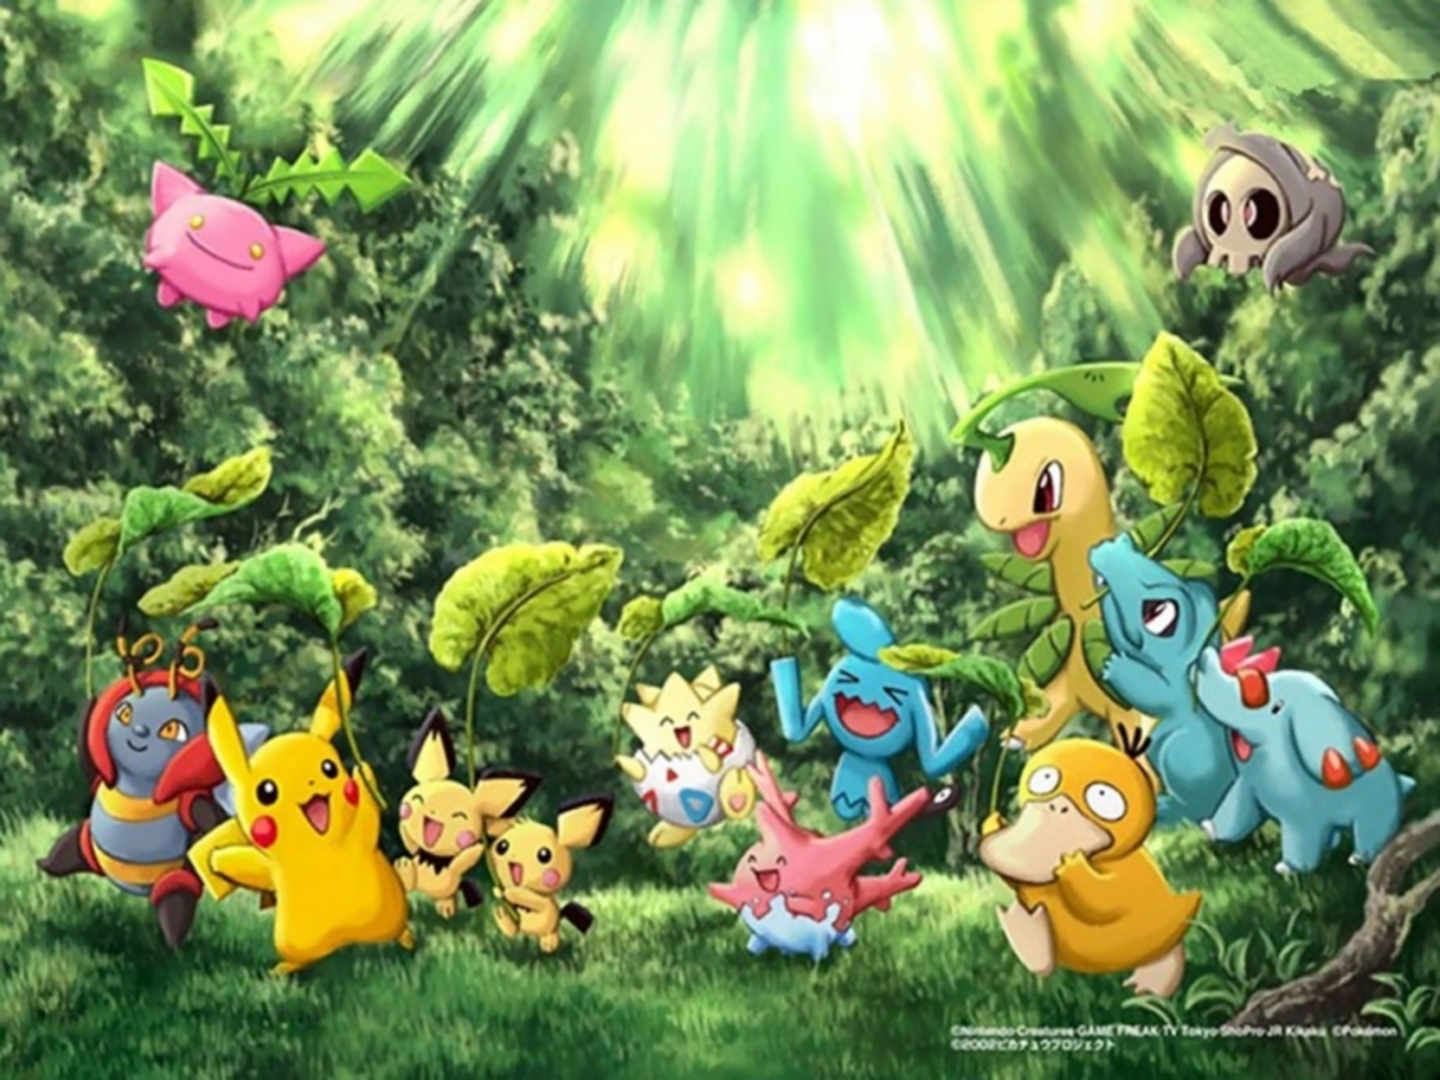 Pokemon HD Wallpapers 1080p - WallpaperSafari